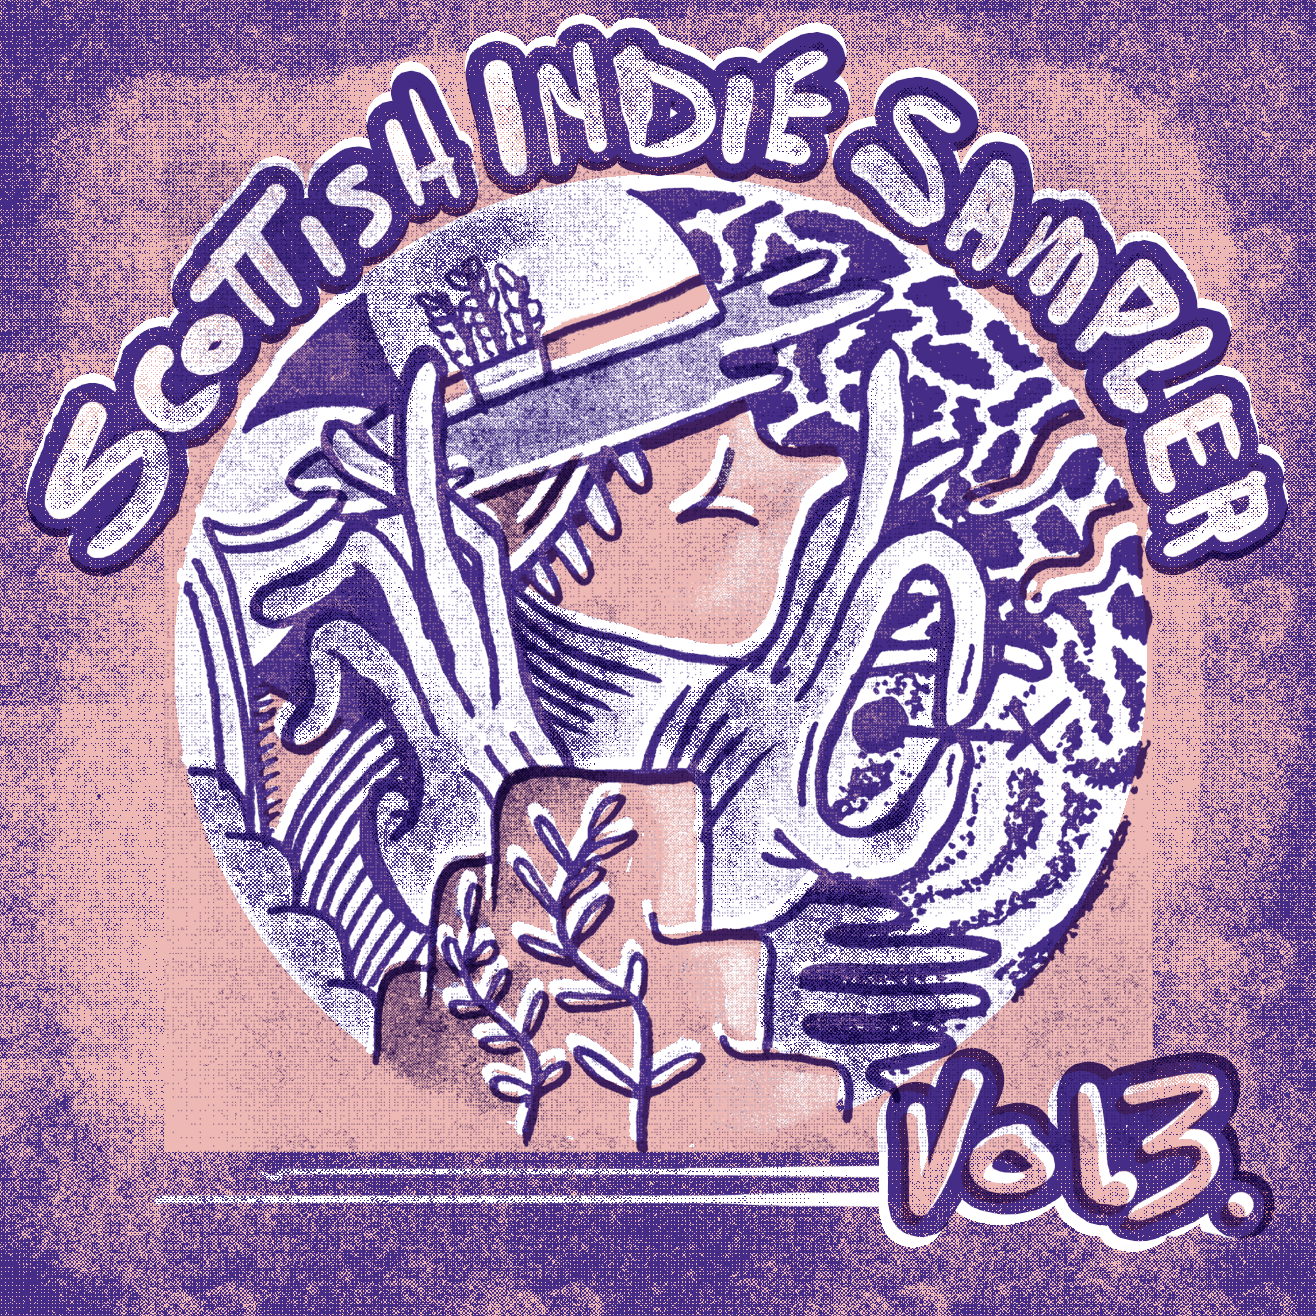 Scottish Indie Sampler Vol. 3